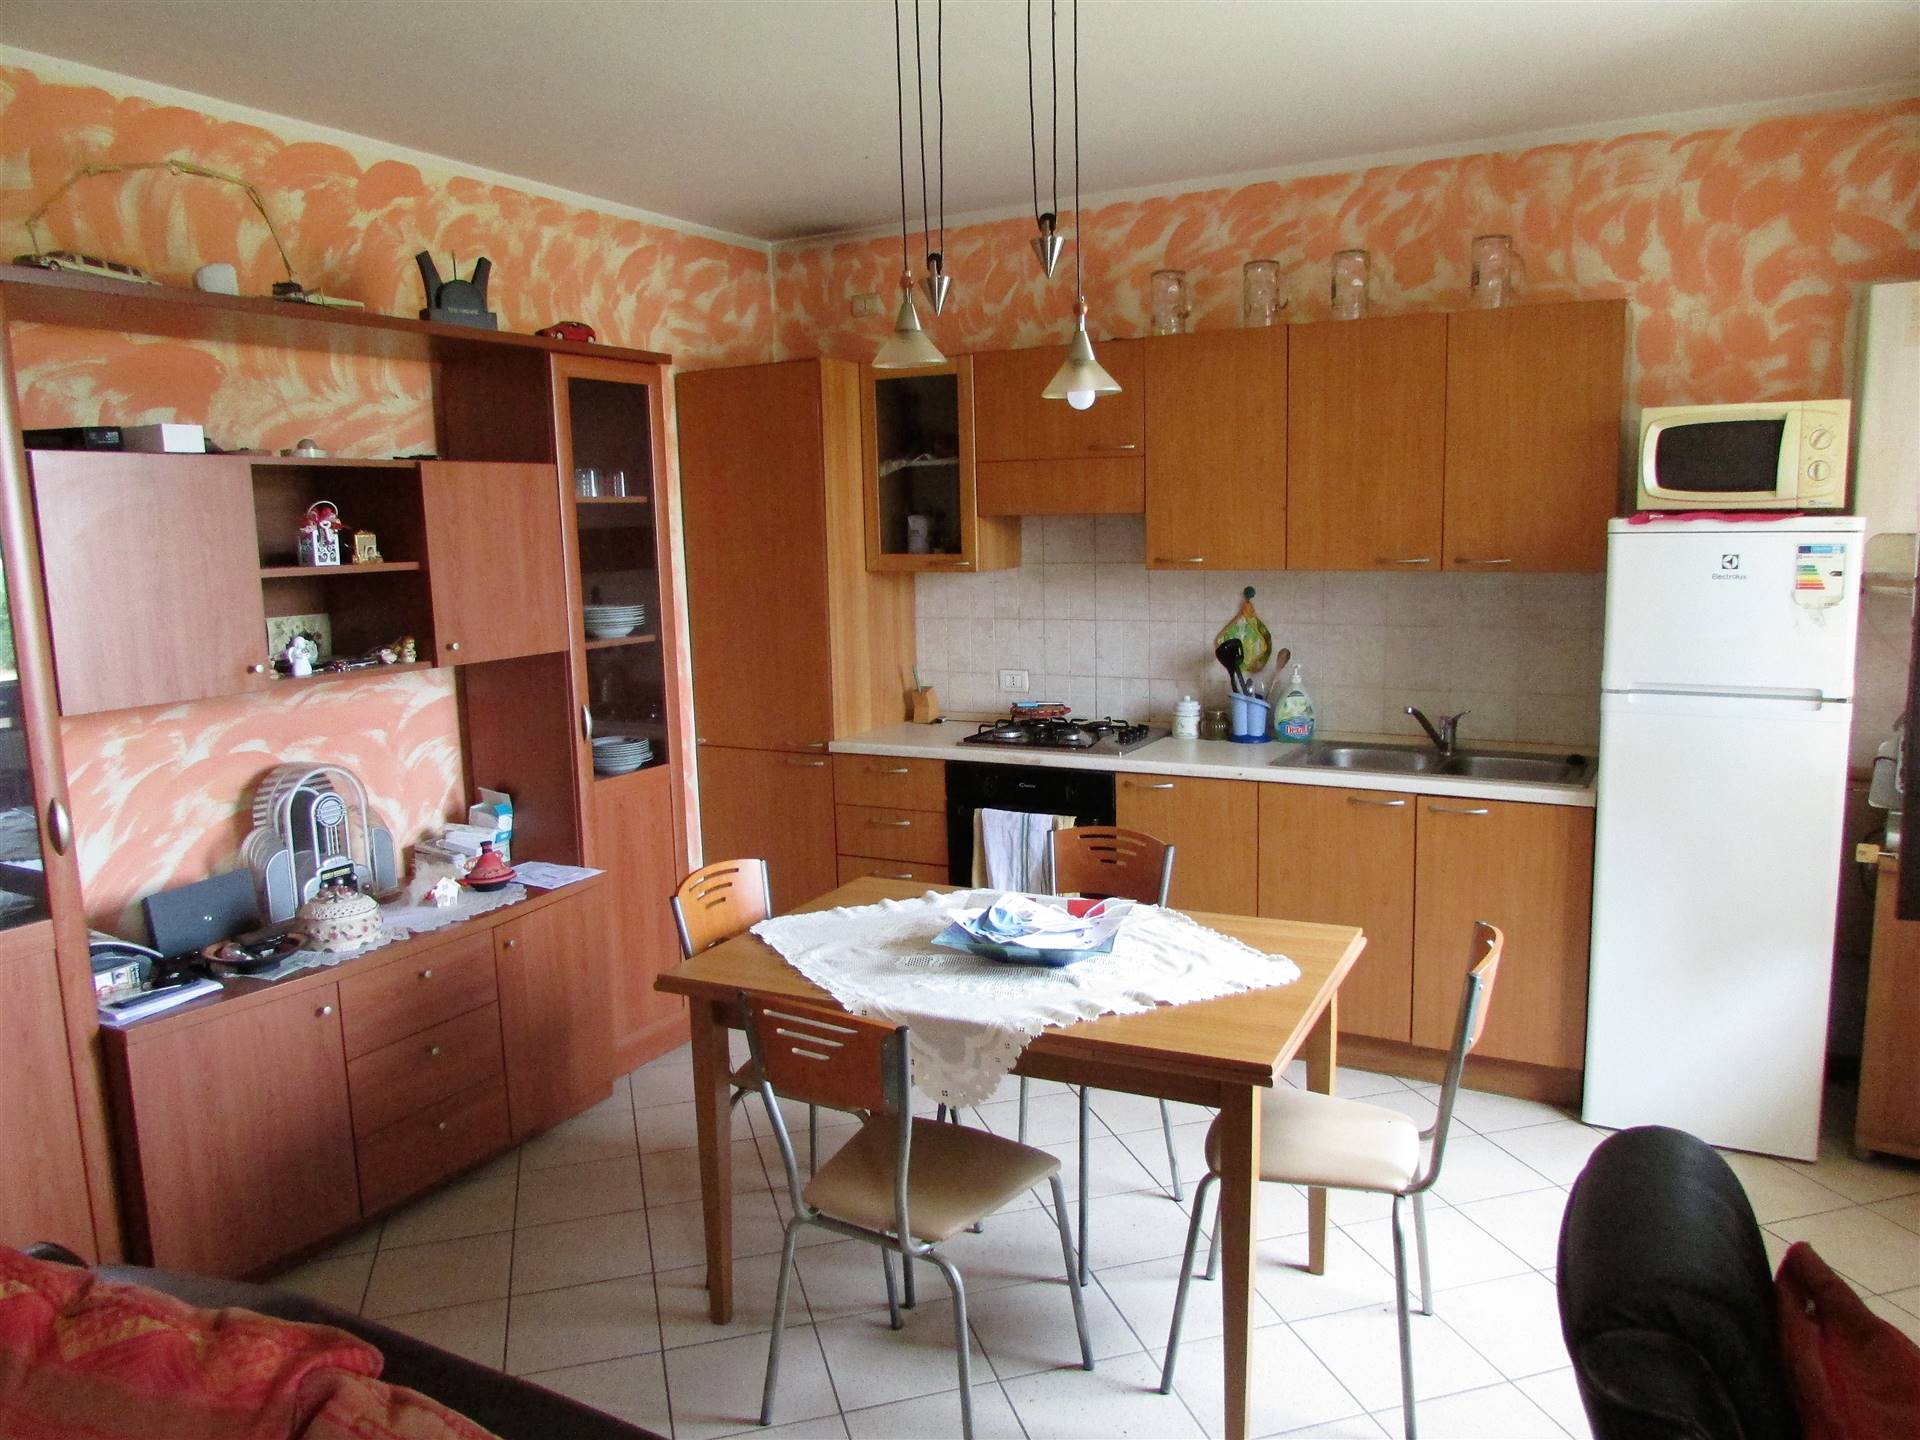 VERONELLA, Apartment for sale, Good condition, Heating Individual heating system, Energetic class: G, placed at 1°, composed by: 3 Rooms, Kitchenette,